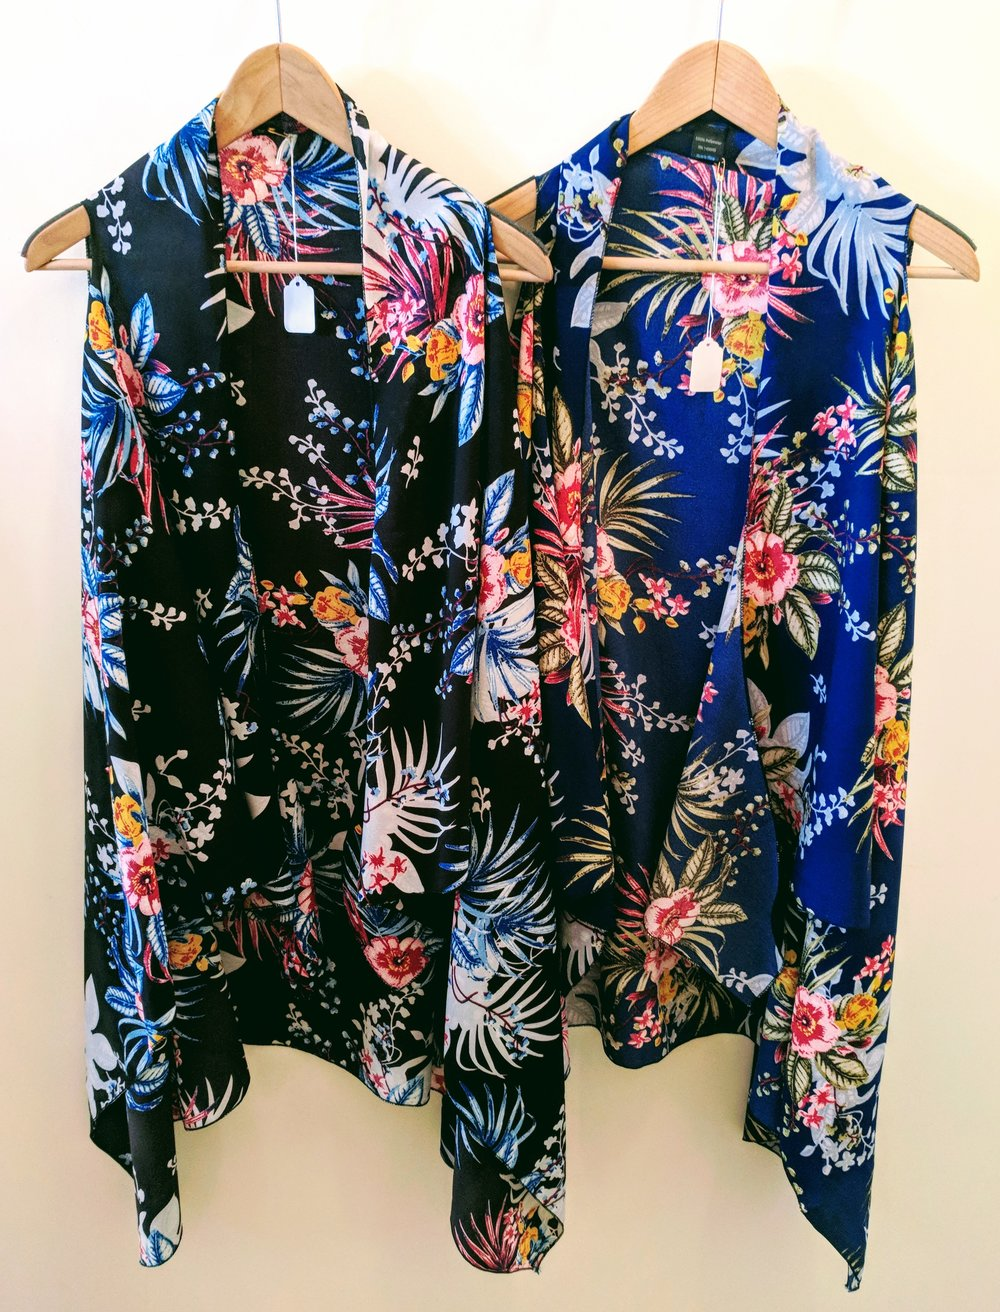 Black and blue tropical pattern kimono vest.